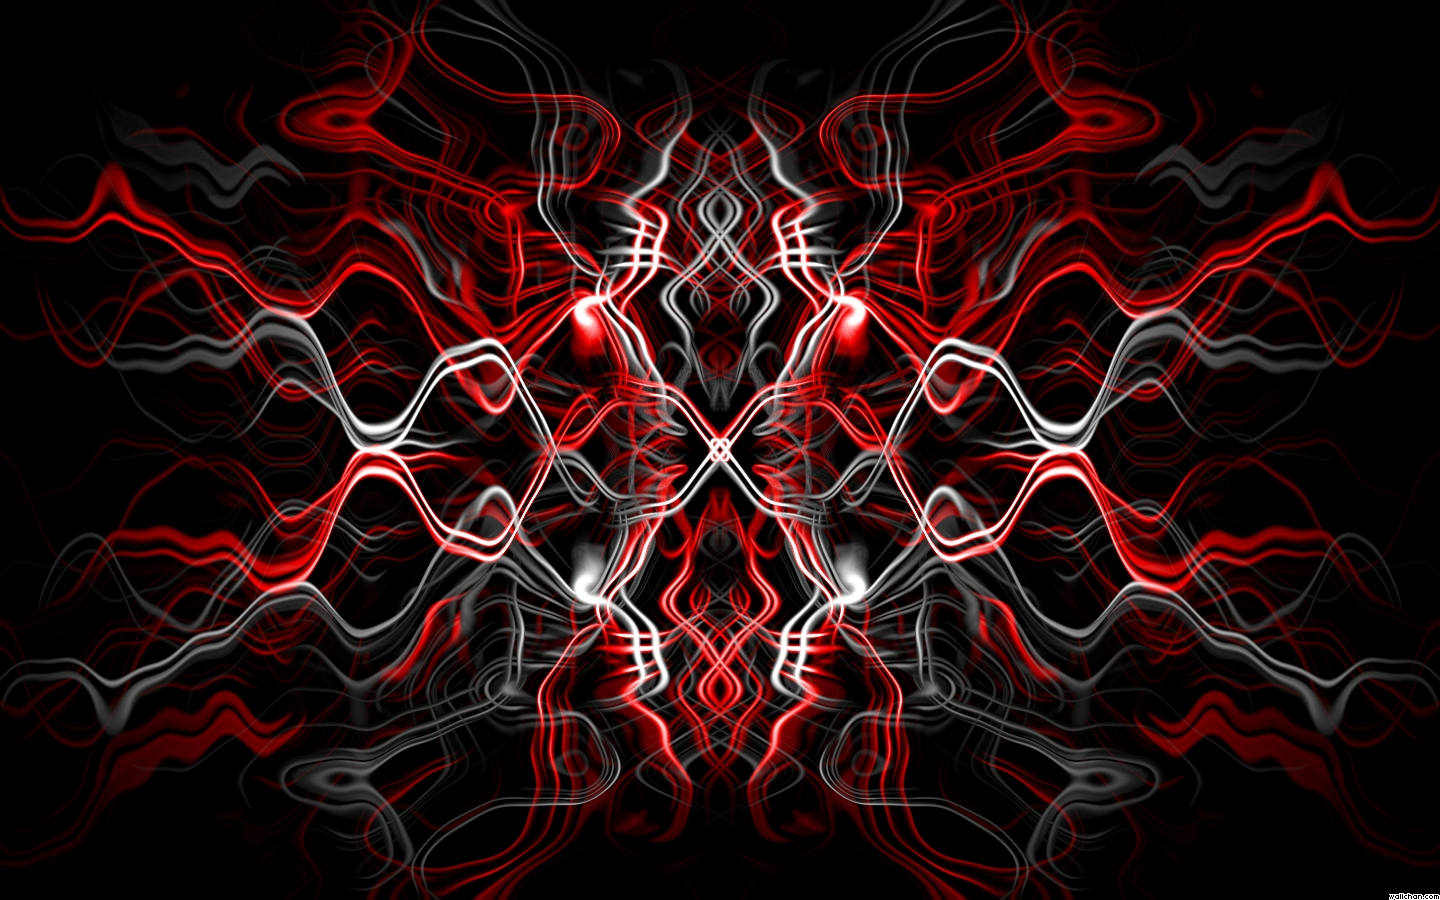 Black wallpaper images 2 cool hd wallpaper - Cool red and black wallpapers ...